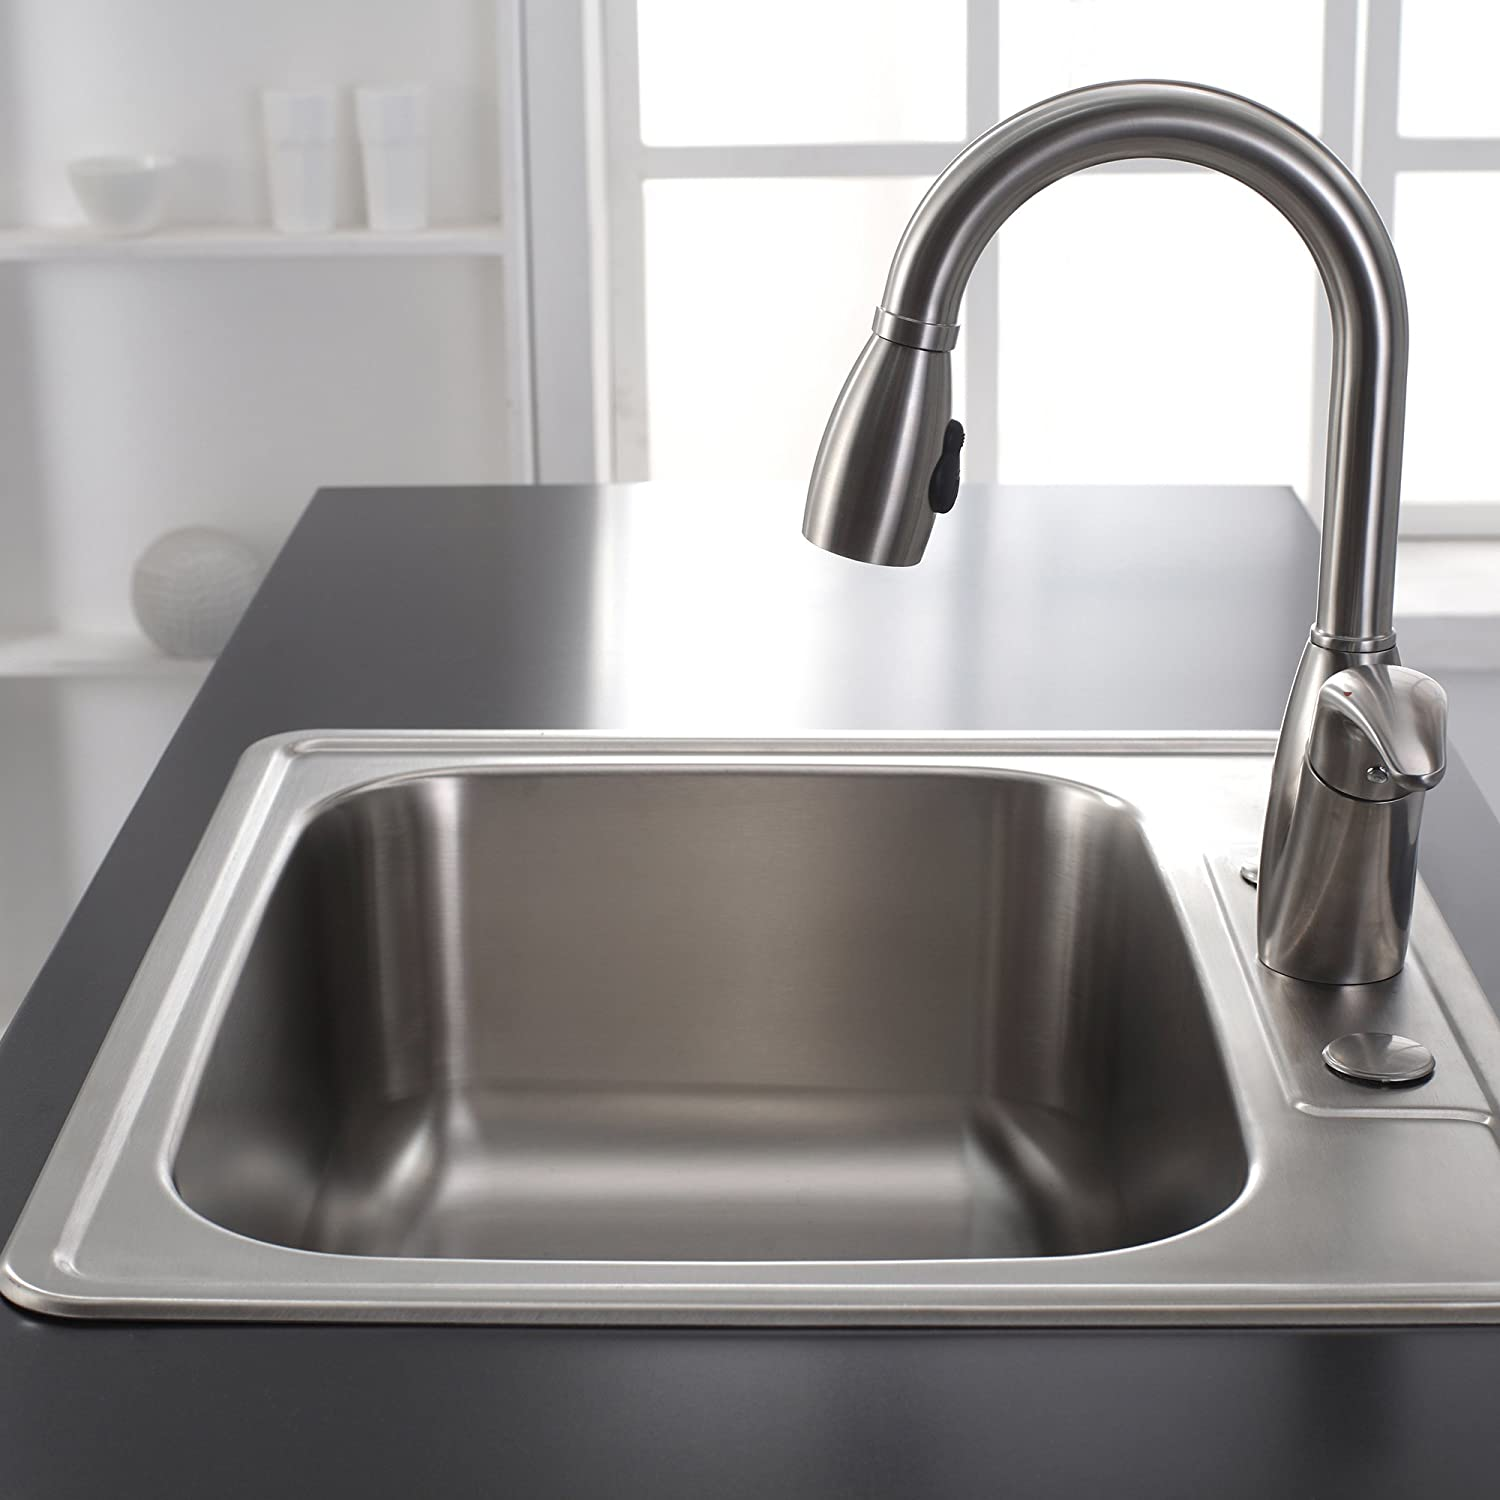 attractive Deepest Kitchen Sink #7: Kraus KTM25 25 inch Topmount Single Bowl 18 gauge Stainless Steel Kitchen  Sink - Double Bowl Sinks - Amazon.com